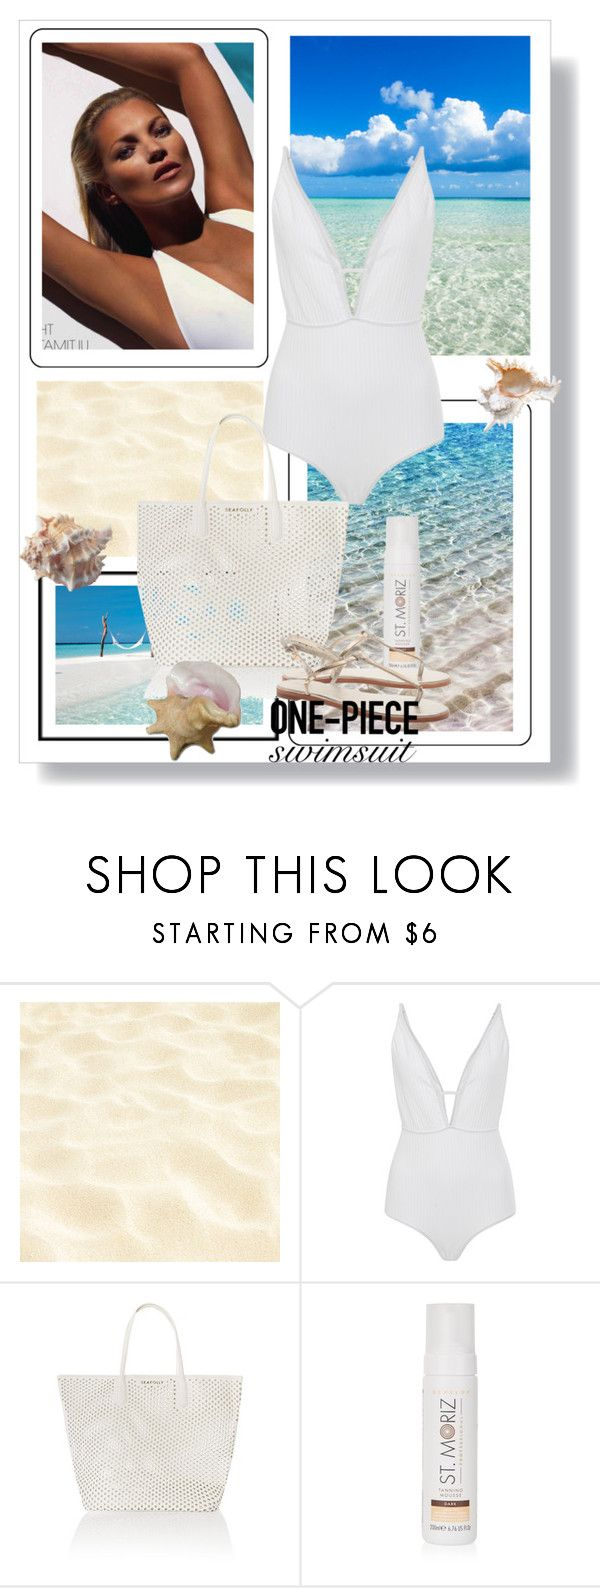 """""""Get the Look: Swimsuit Edition"""" by dezaval ❤ liked on Polyvore featuring Zimmermann, Seafolly, New Look, GetTheLook, Swimsuits and onepieceswimsuit"""